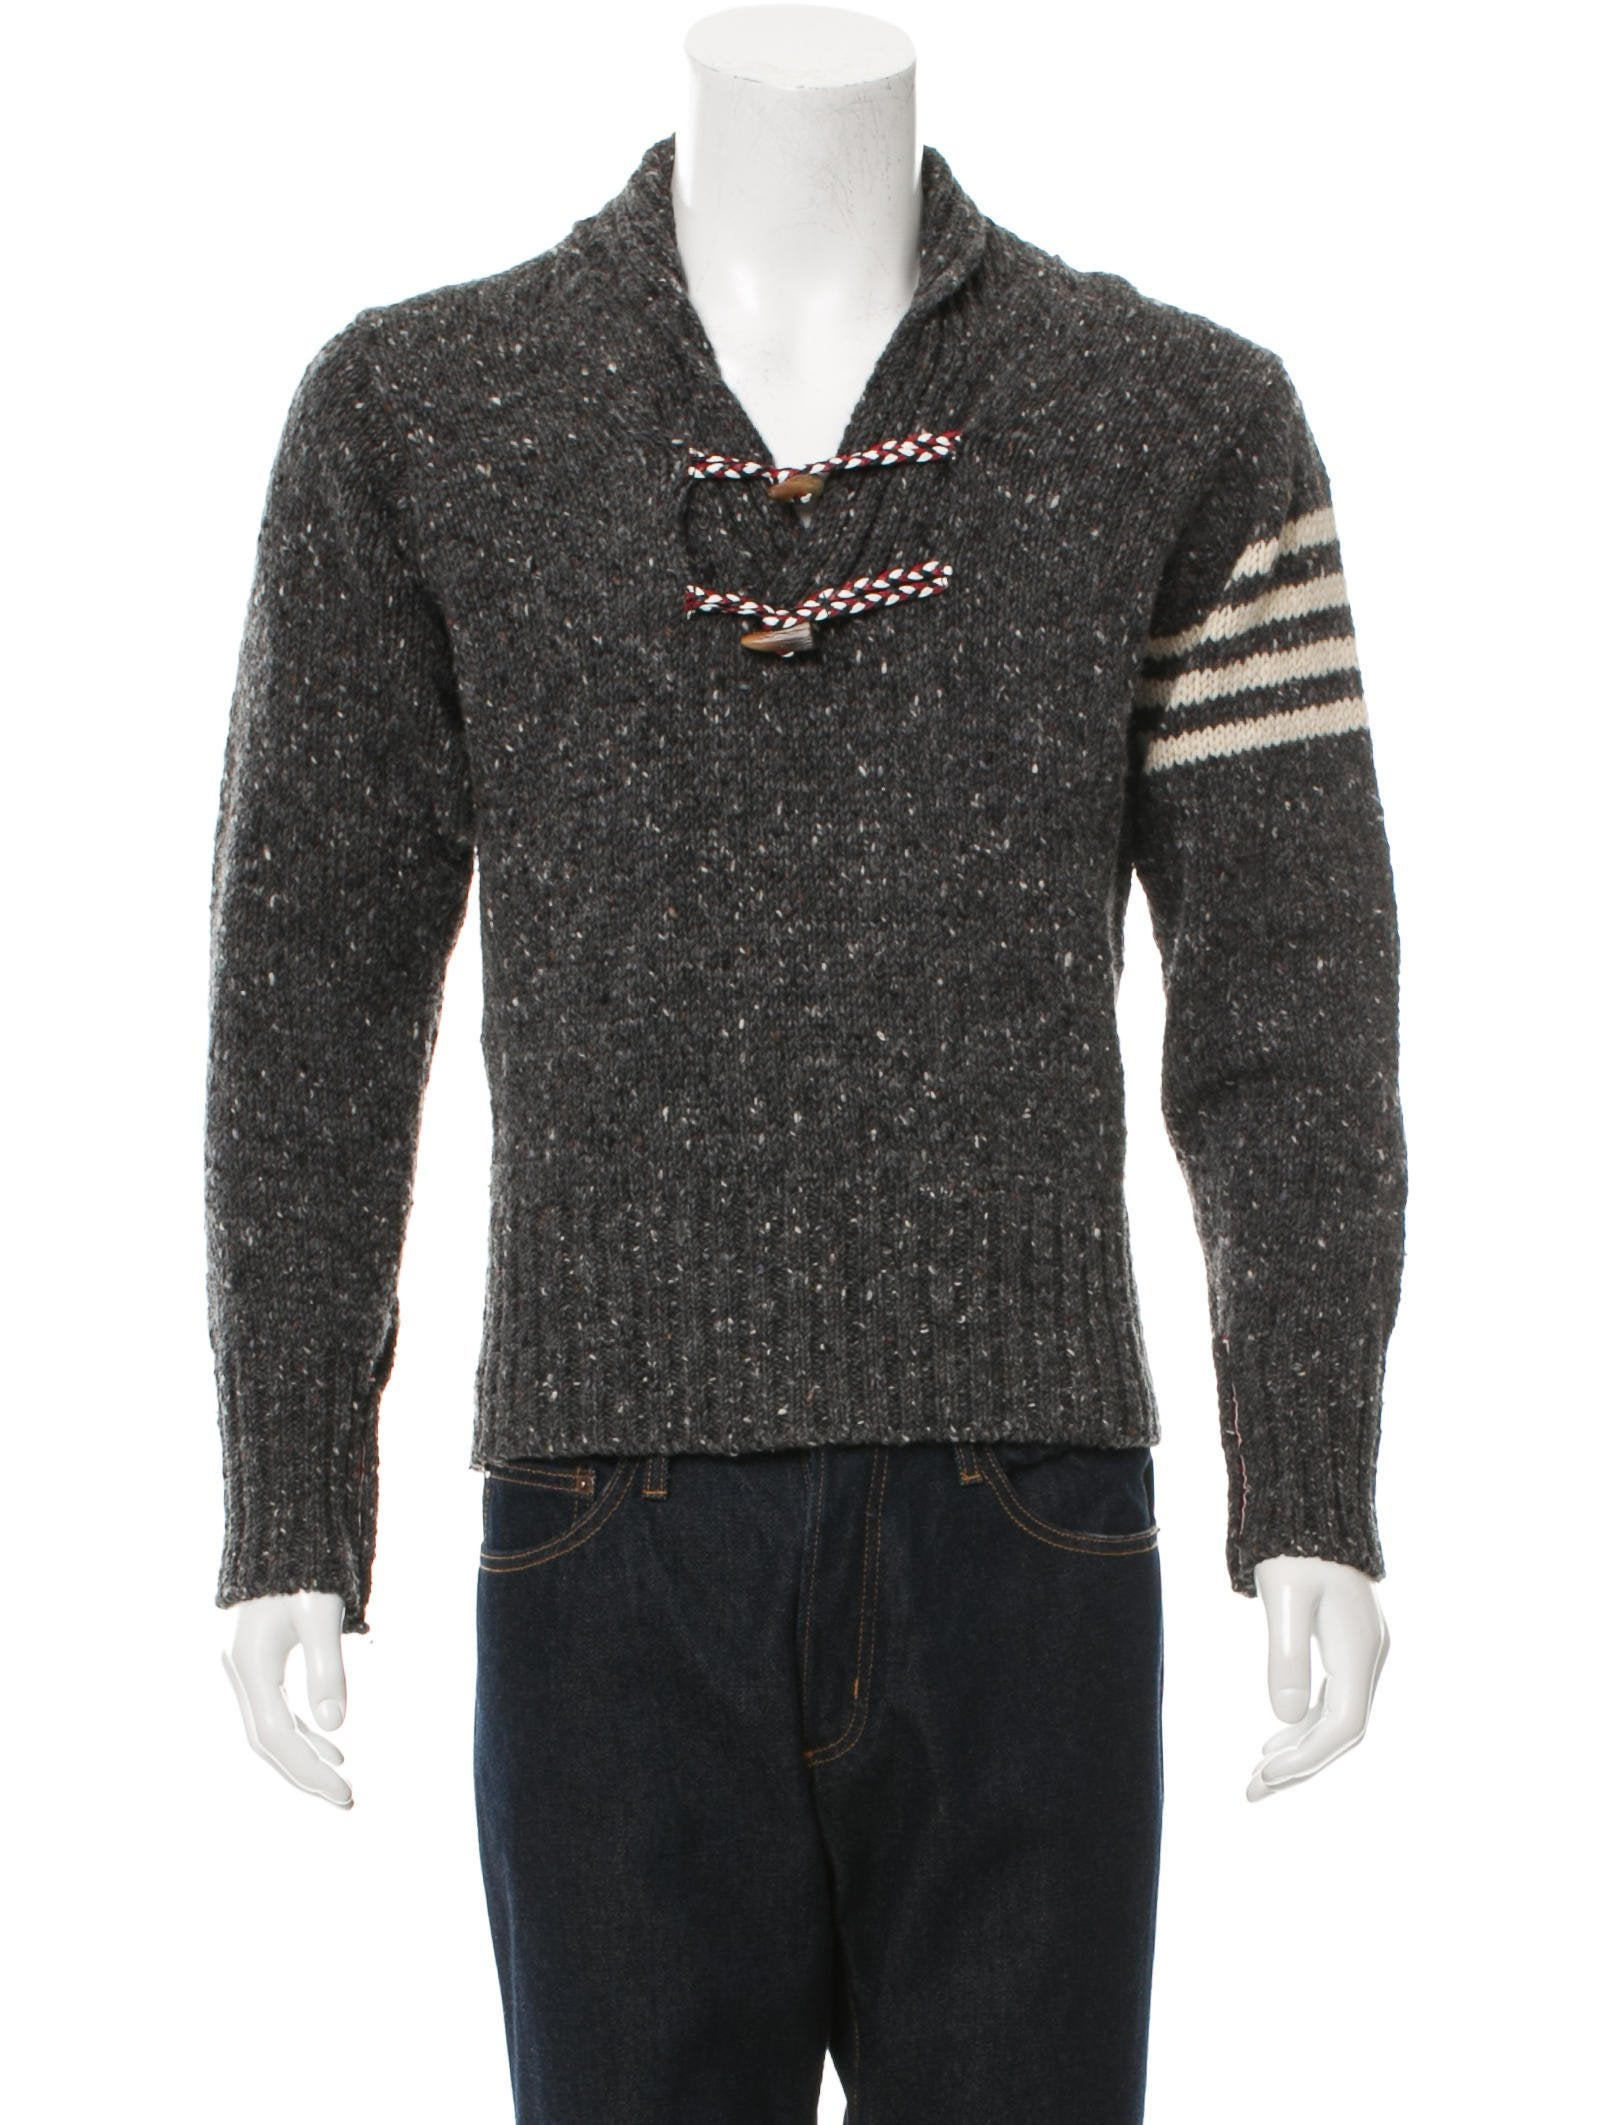 Own your very own Irish Made Shawl Neck Toggle Sweater from the Aran Sweater Market. This mens toggle sweater is created using traditional Aran cable, basket and diamond stitches.